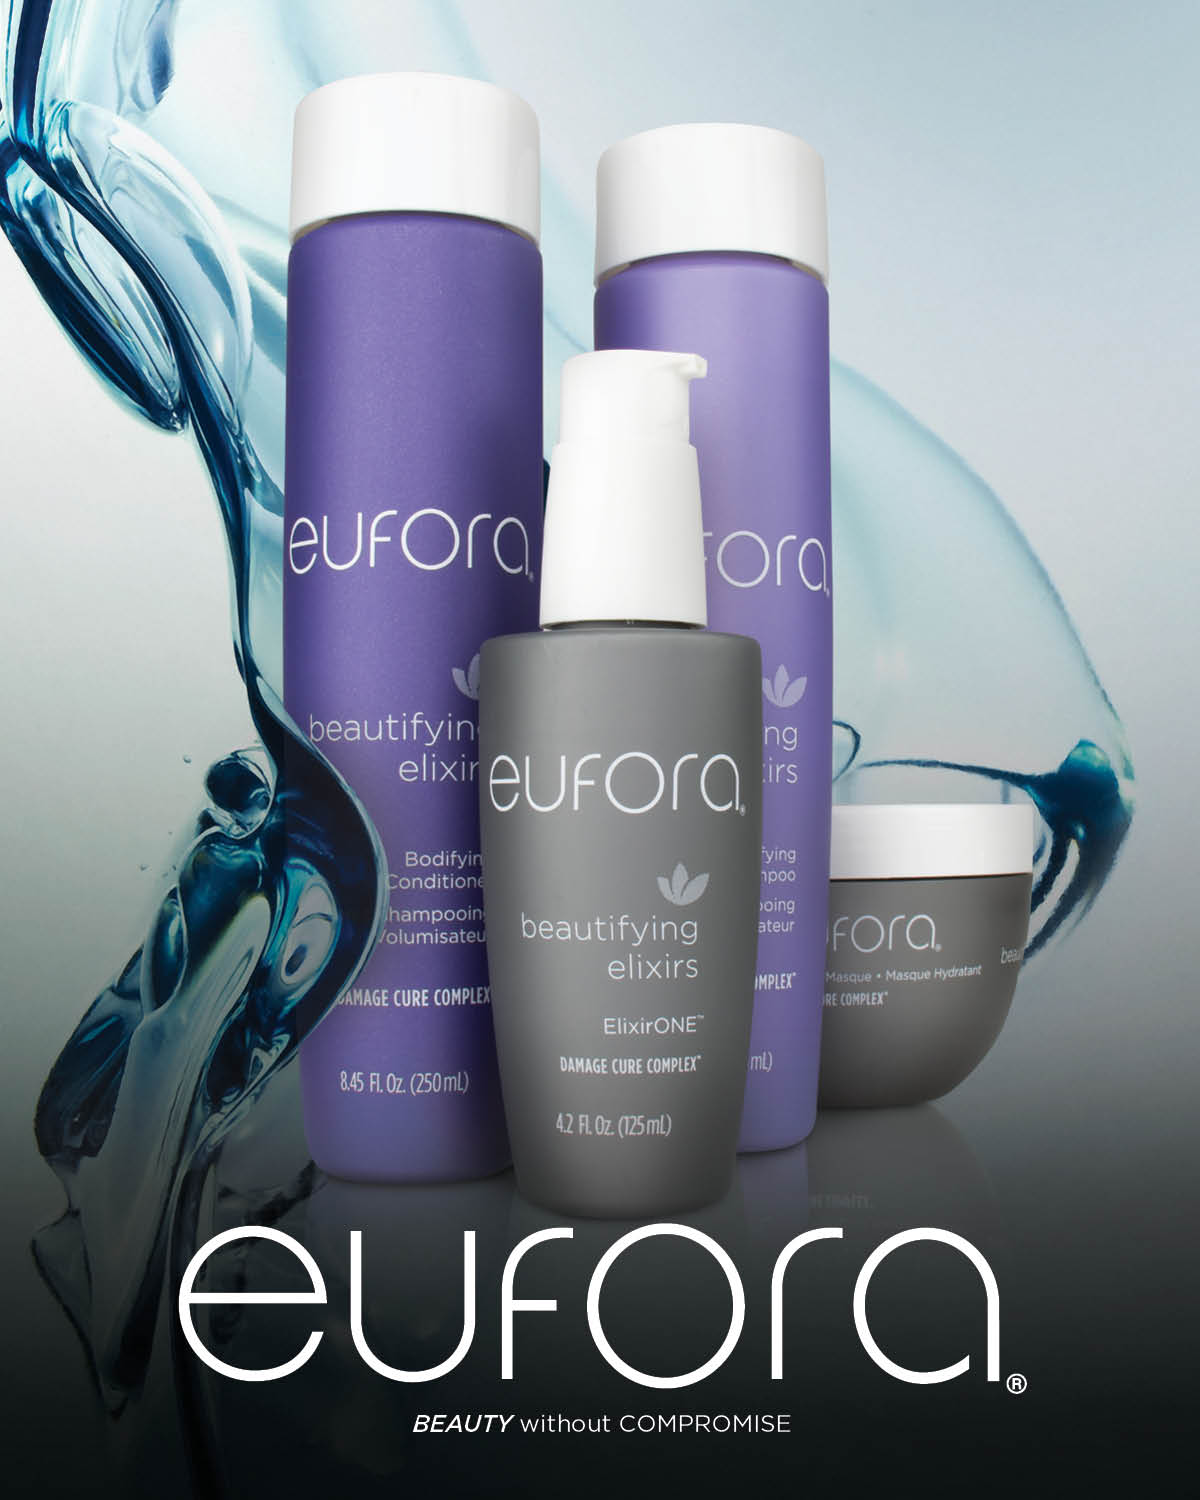 - Eufora is a pharmaceutical grade aloe vera based product. Advanced technology utilizes important botanical extracts that have been scientifically proven to benefit the hair, scalp and skin. Eufora is committed to the environment and the safety of the consumer that uses their product. It is petro-chemical and paraben free. Eufora strives to create products that not only provide performance, they also maintain a high level of integrity with unique botanical ingredients and performance benefits above all.